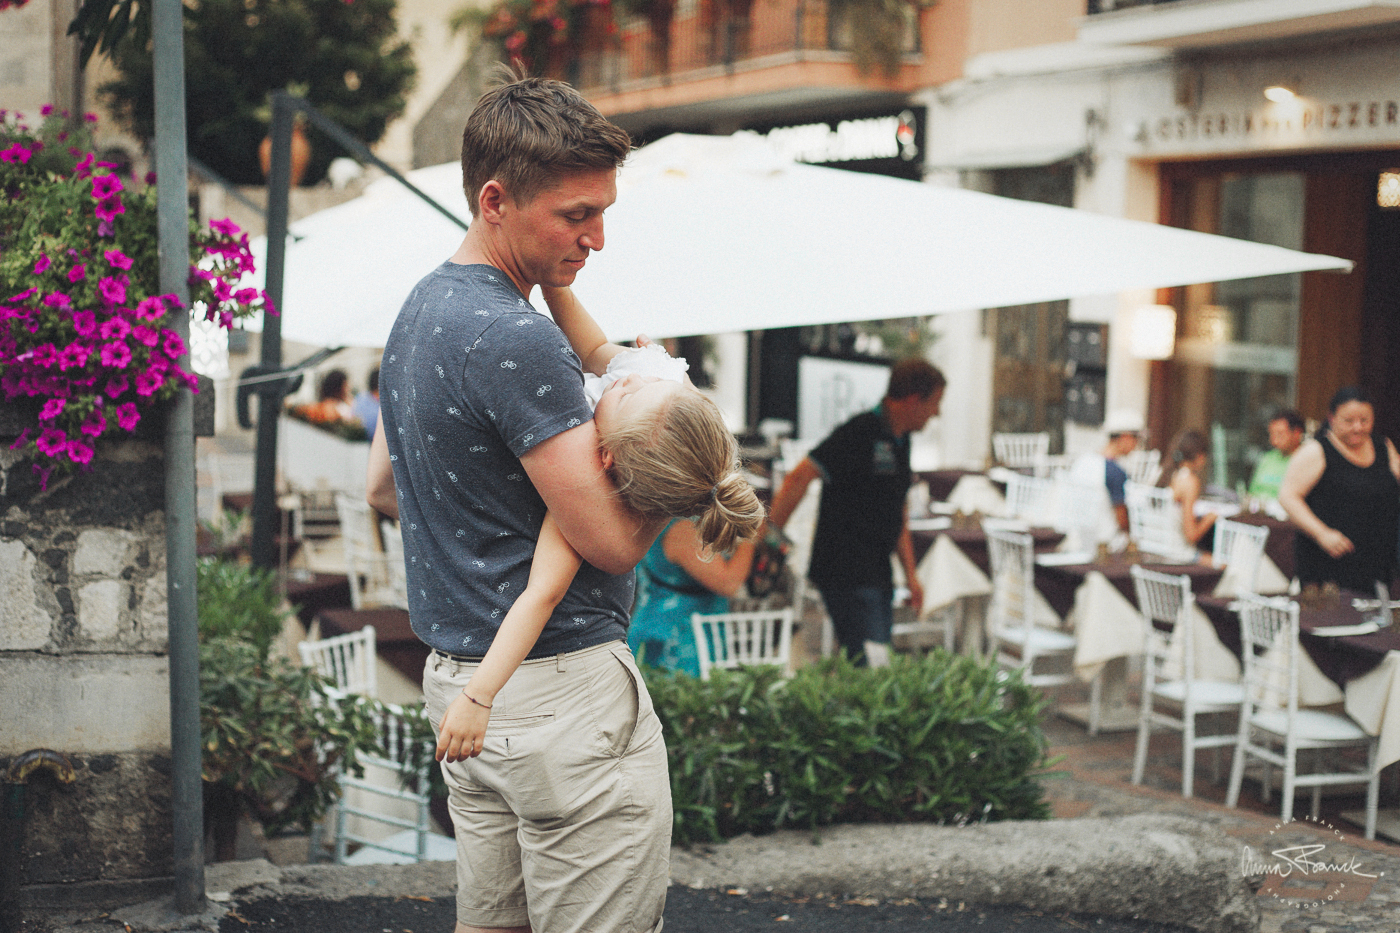 anna, franck, photography, sicilia, sicily, taormina, travelphotography, lifestyle, urban, architecture, details, moments, dogs, summer, stockholm, photographer